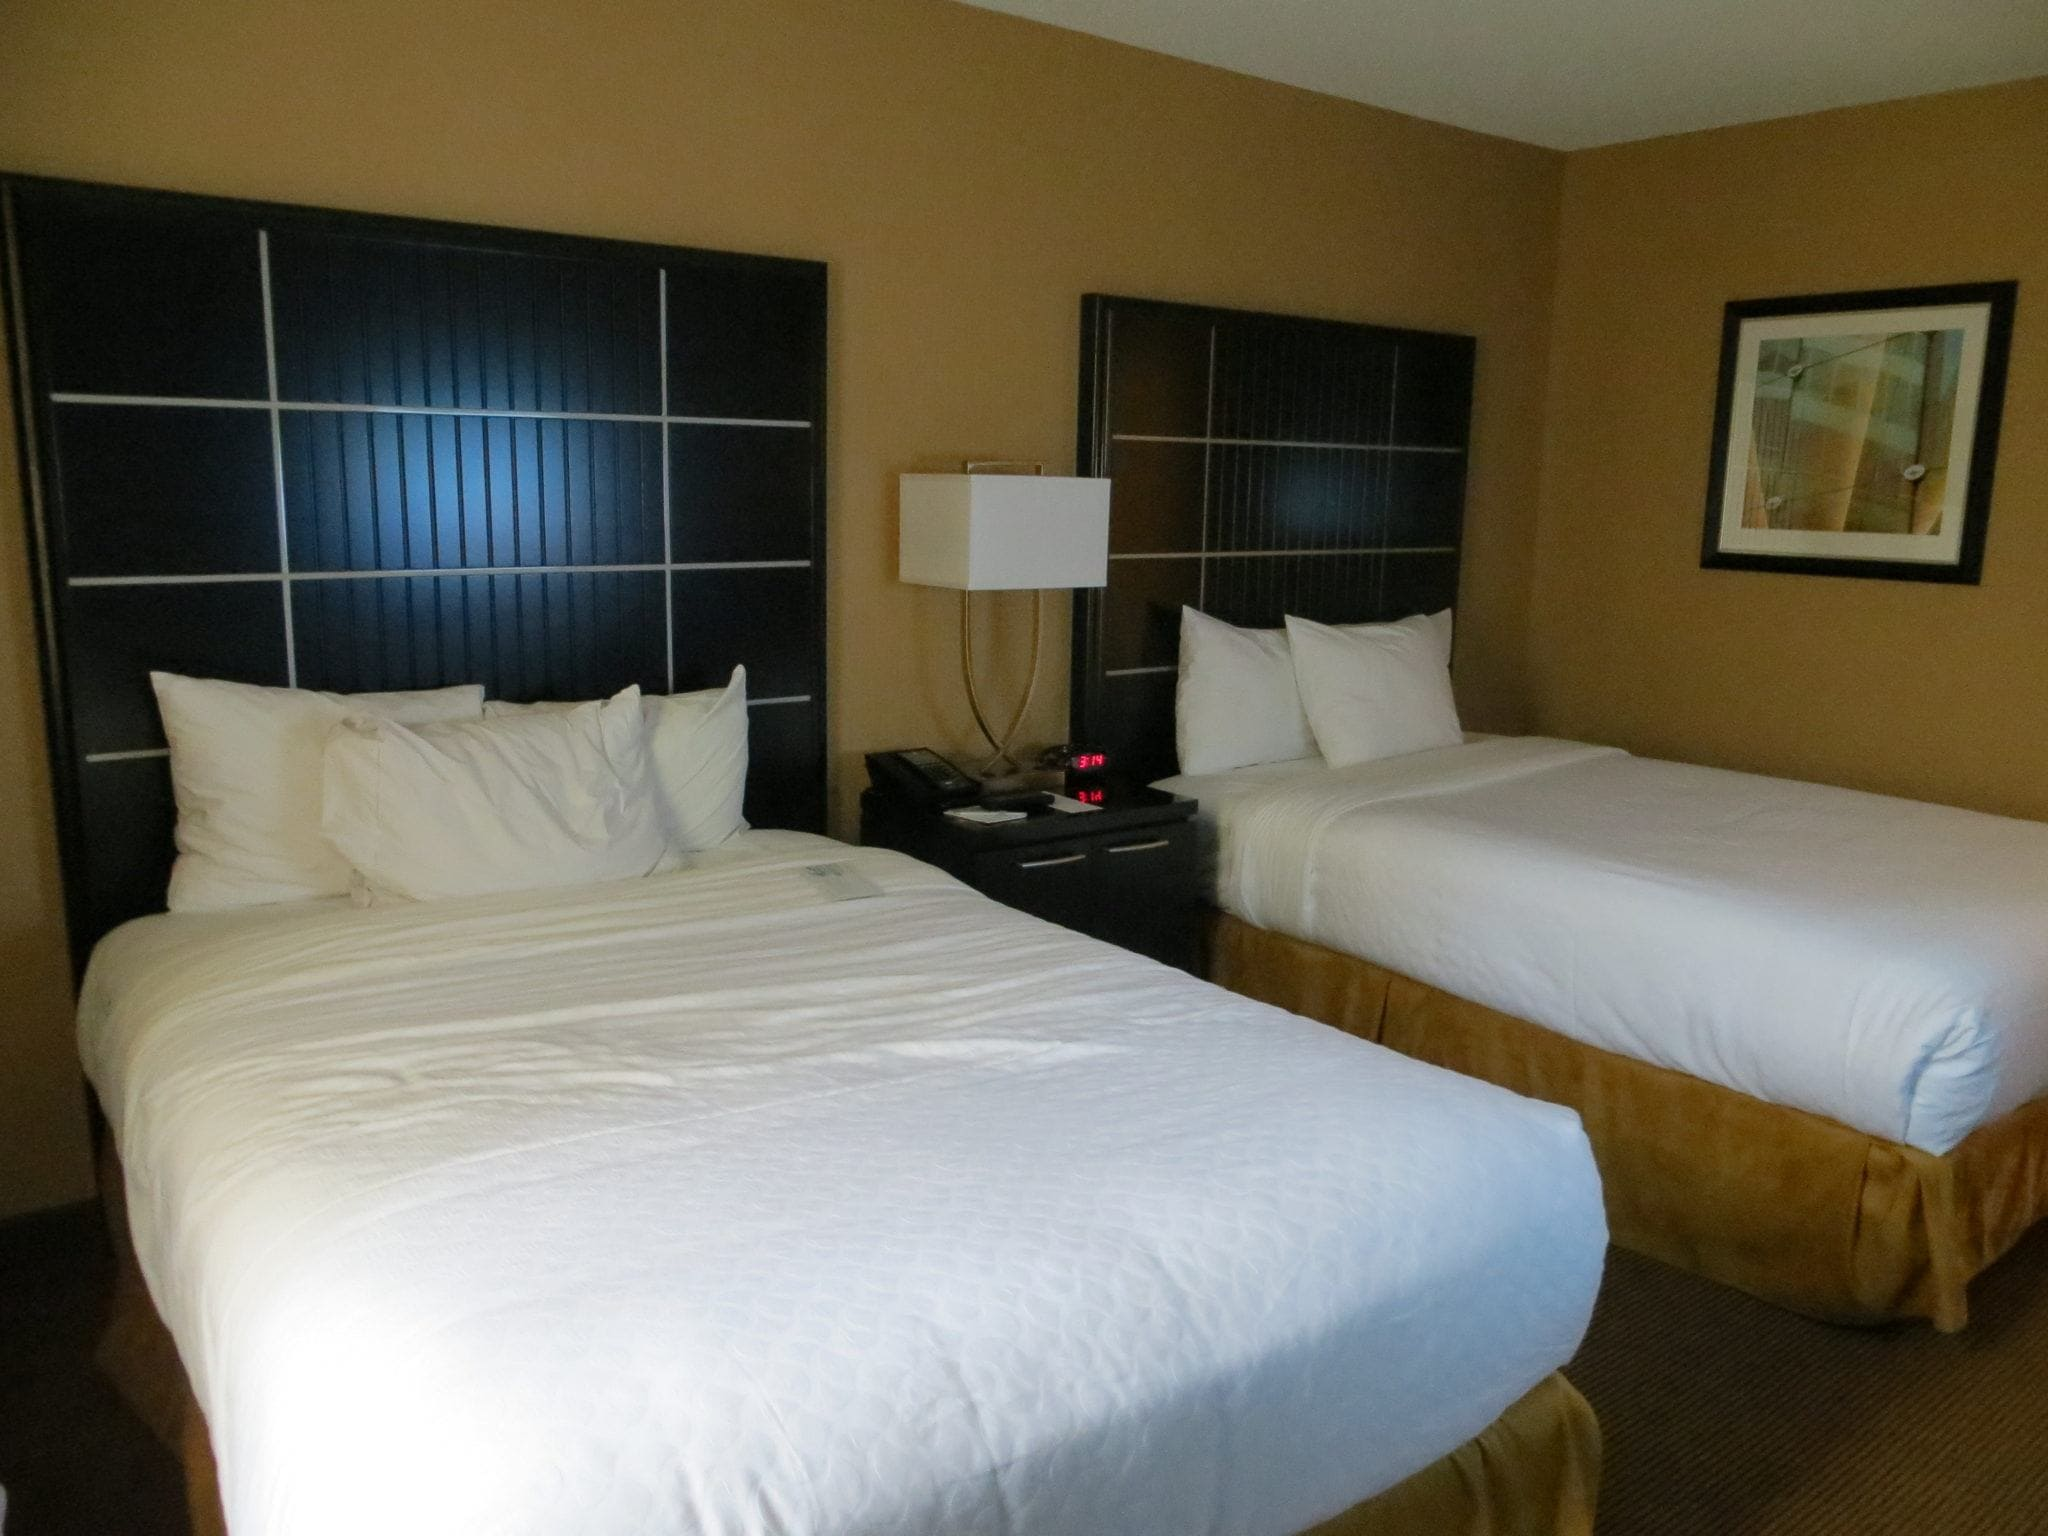 Double Bed Room At Embassy Suites Chicago Downtown